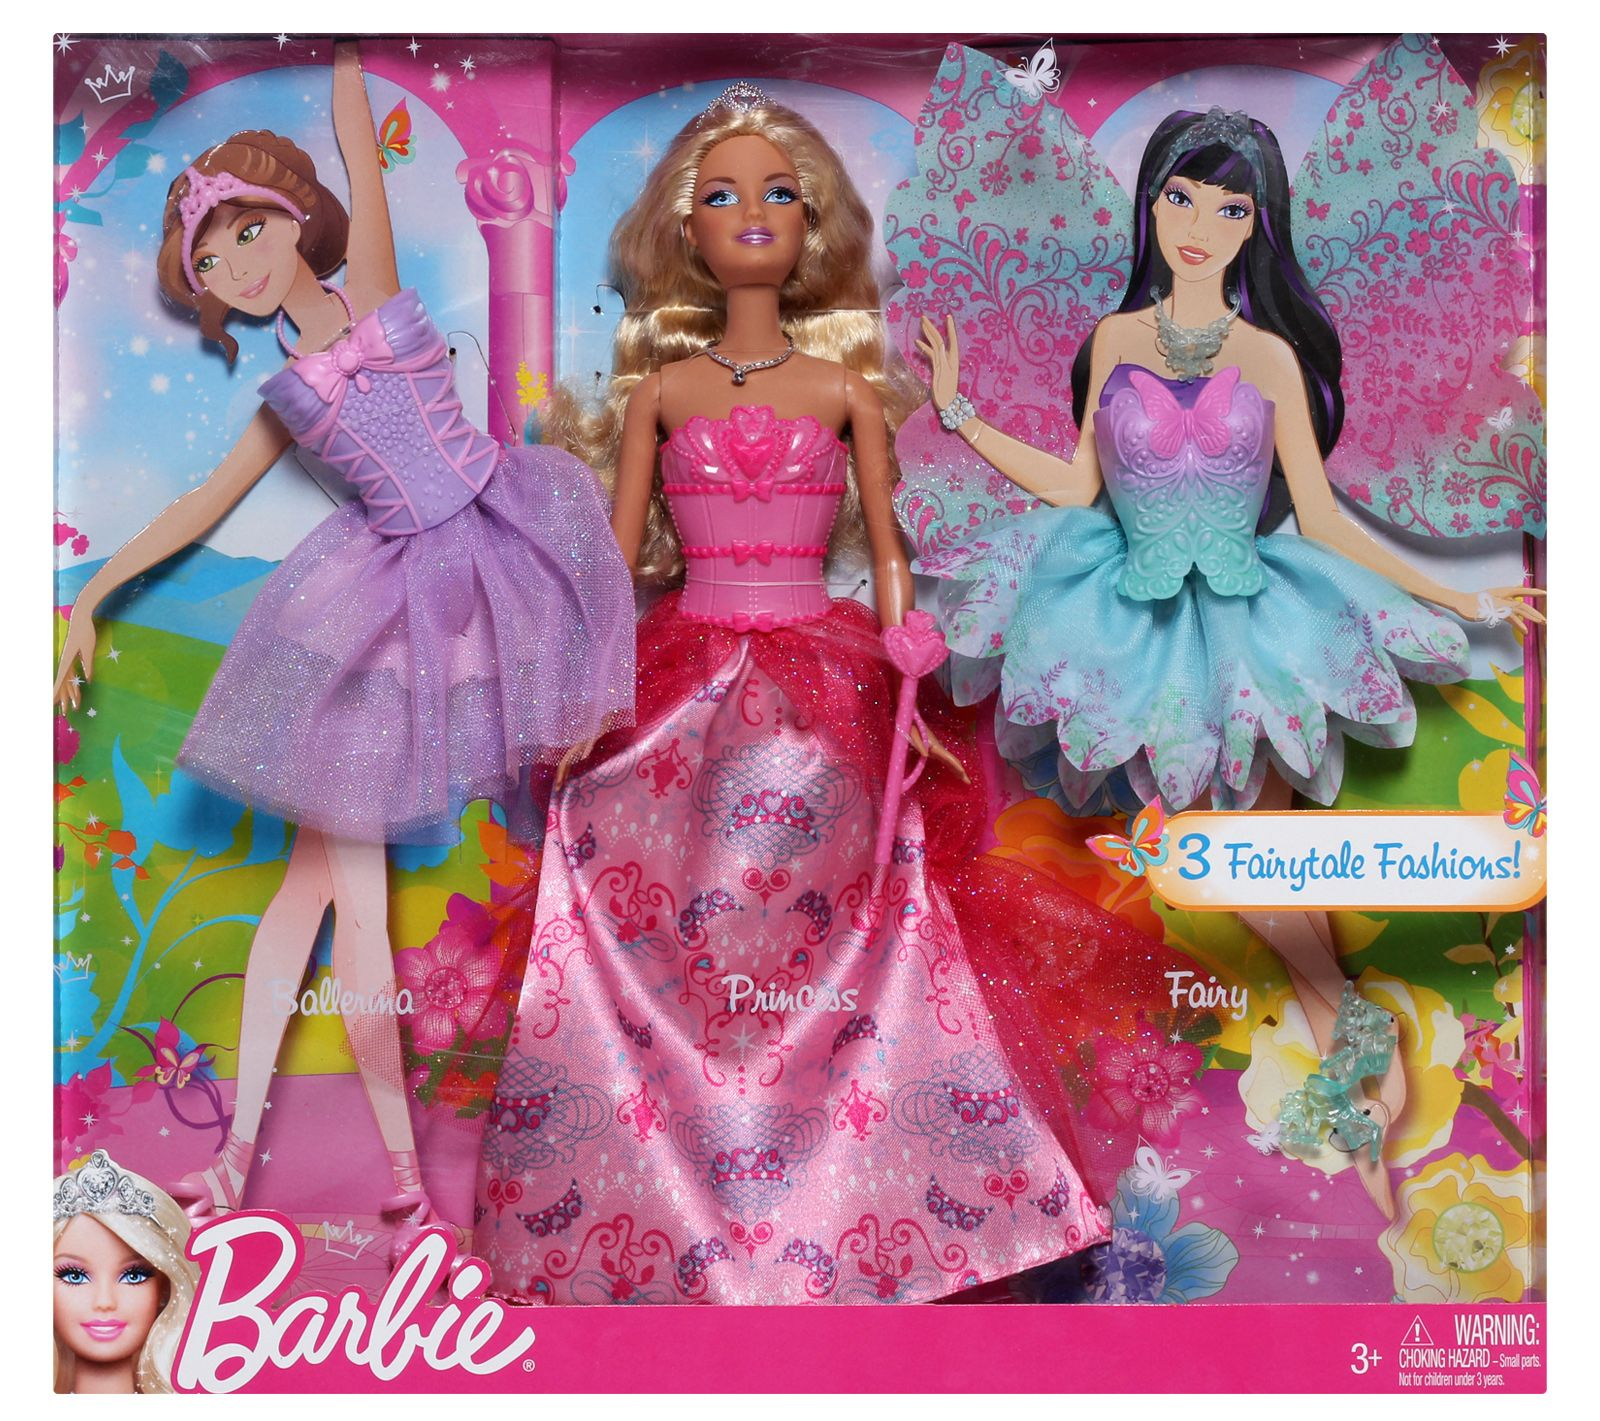 Barbie And A Fashion Fairytale Games Barbie Games Fashion Fairytale